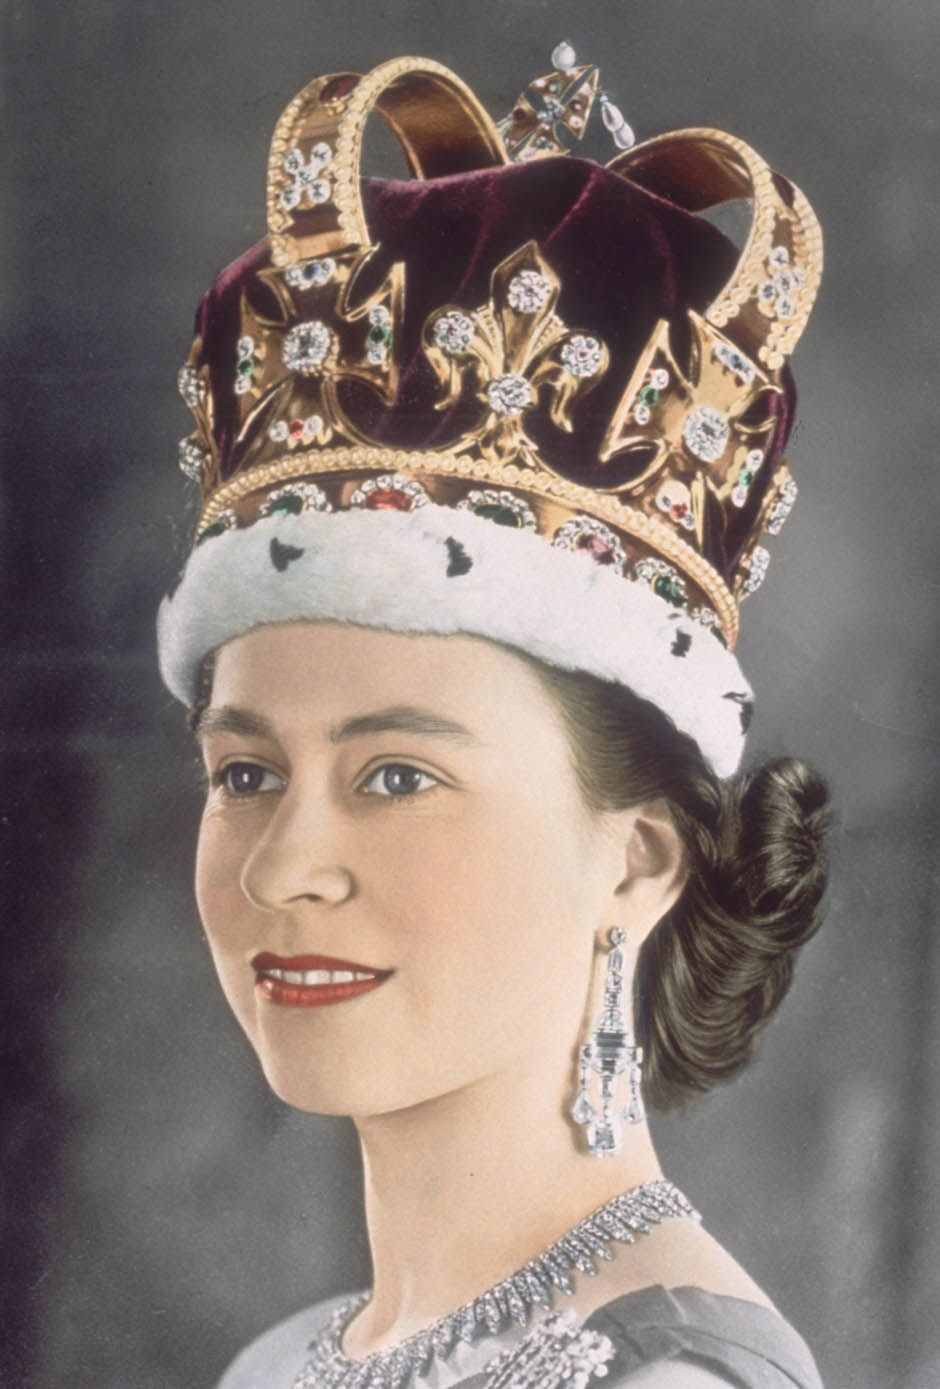 It's not a title, it's an appellation. : Photo   if you ... Queen Elizabeth 1 Crown